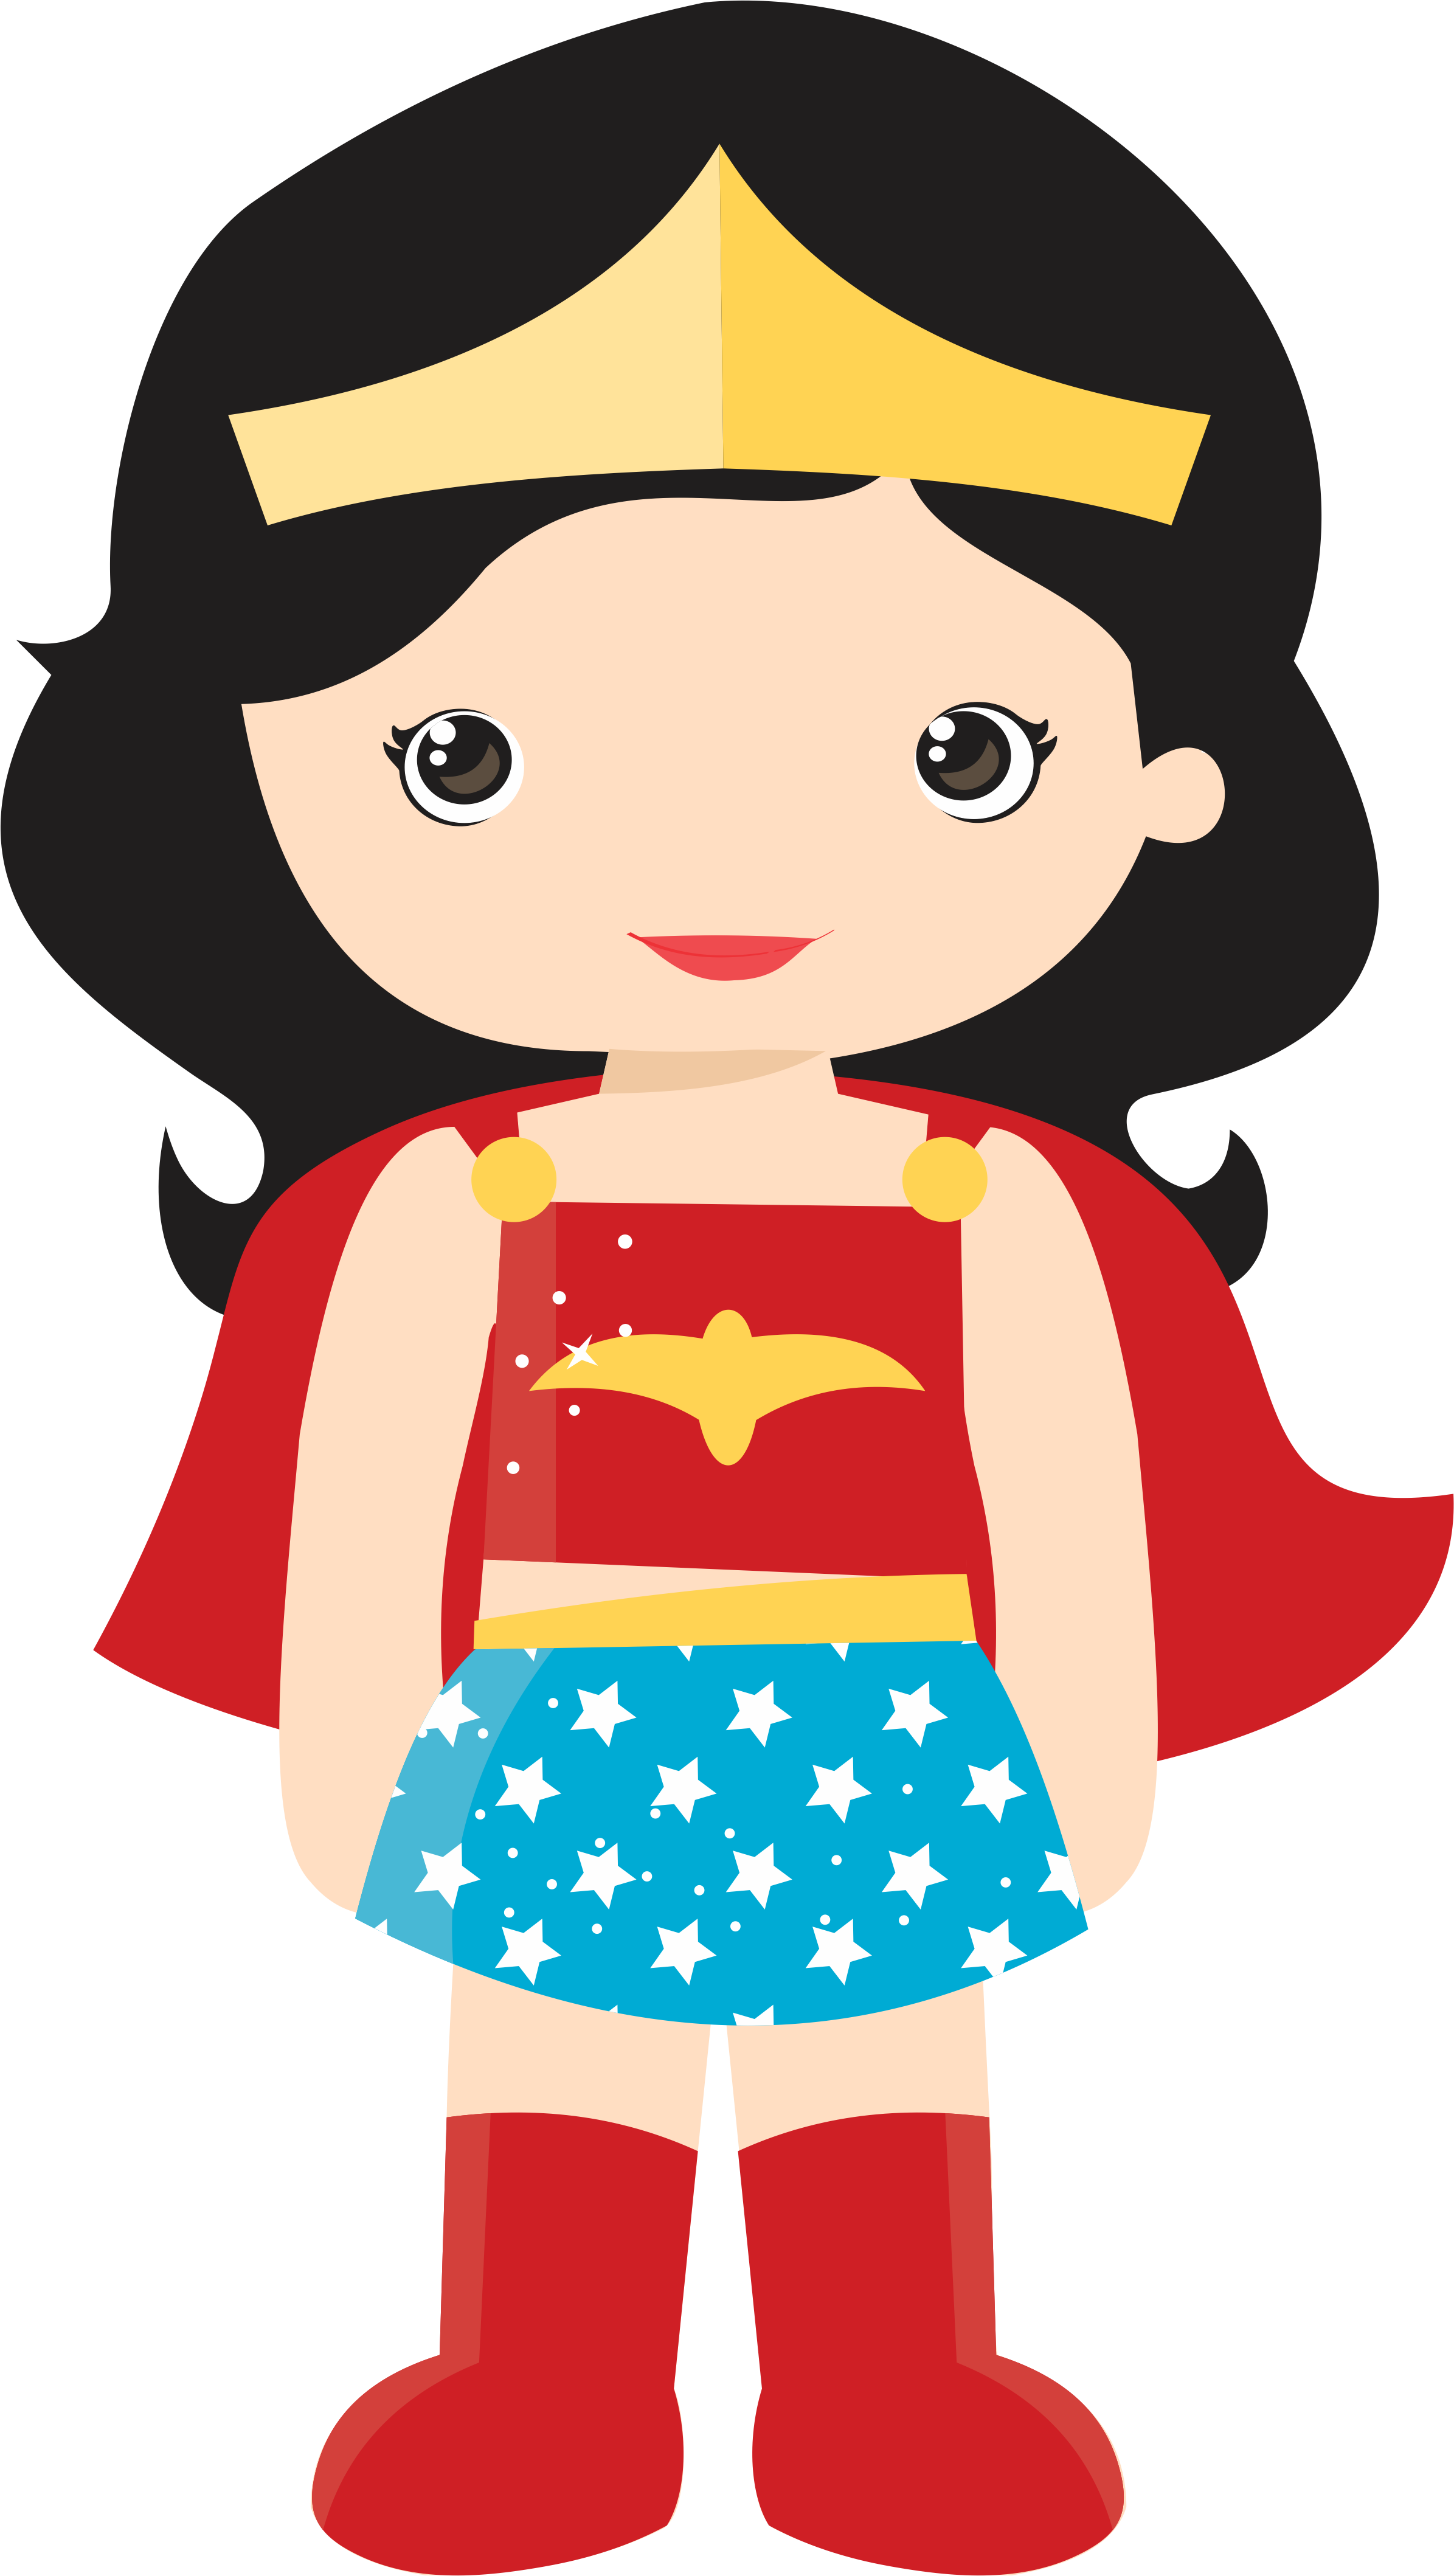 small resolution of superhero pictures superhero ideas superhero classroom super hero theme super hero birthday superhero birthday party superhero clipart wonder woman